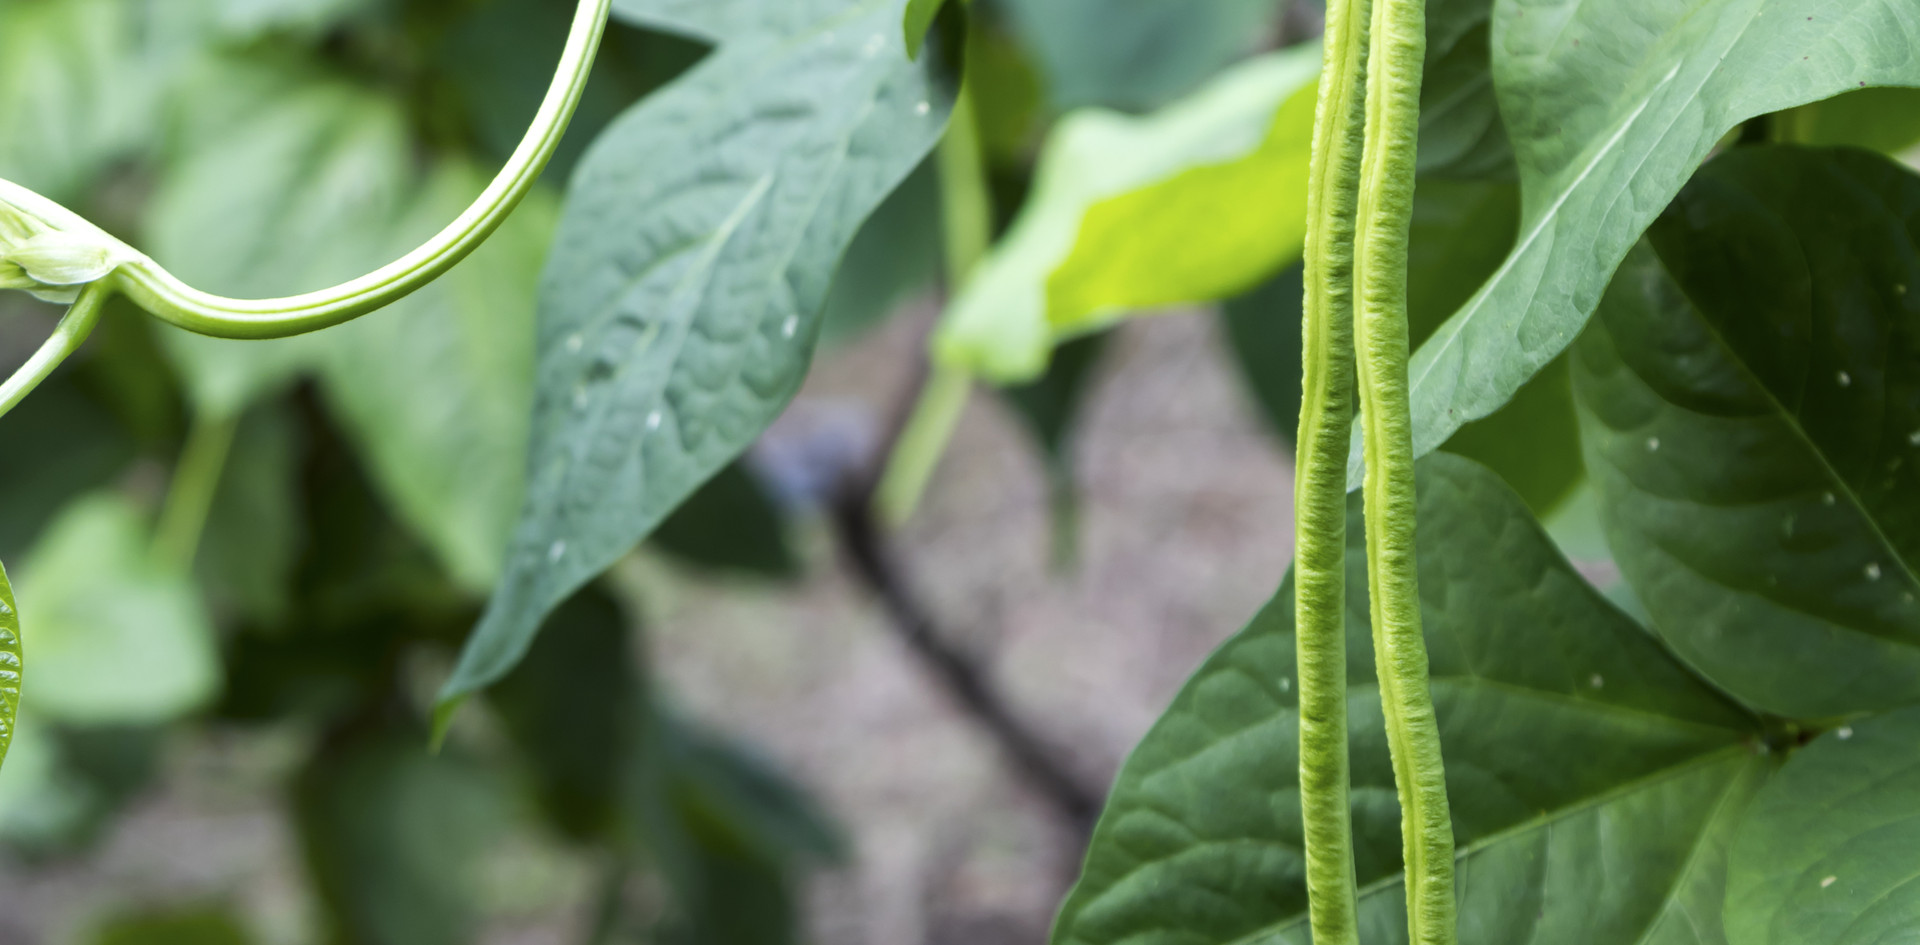 fresh yard long bean plant in garden.jpg